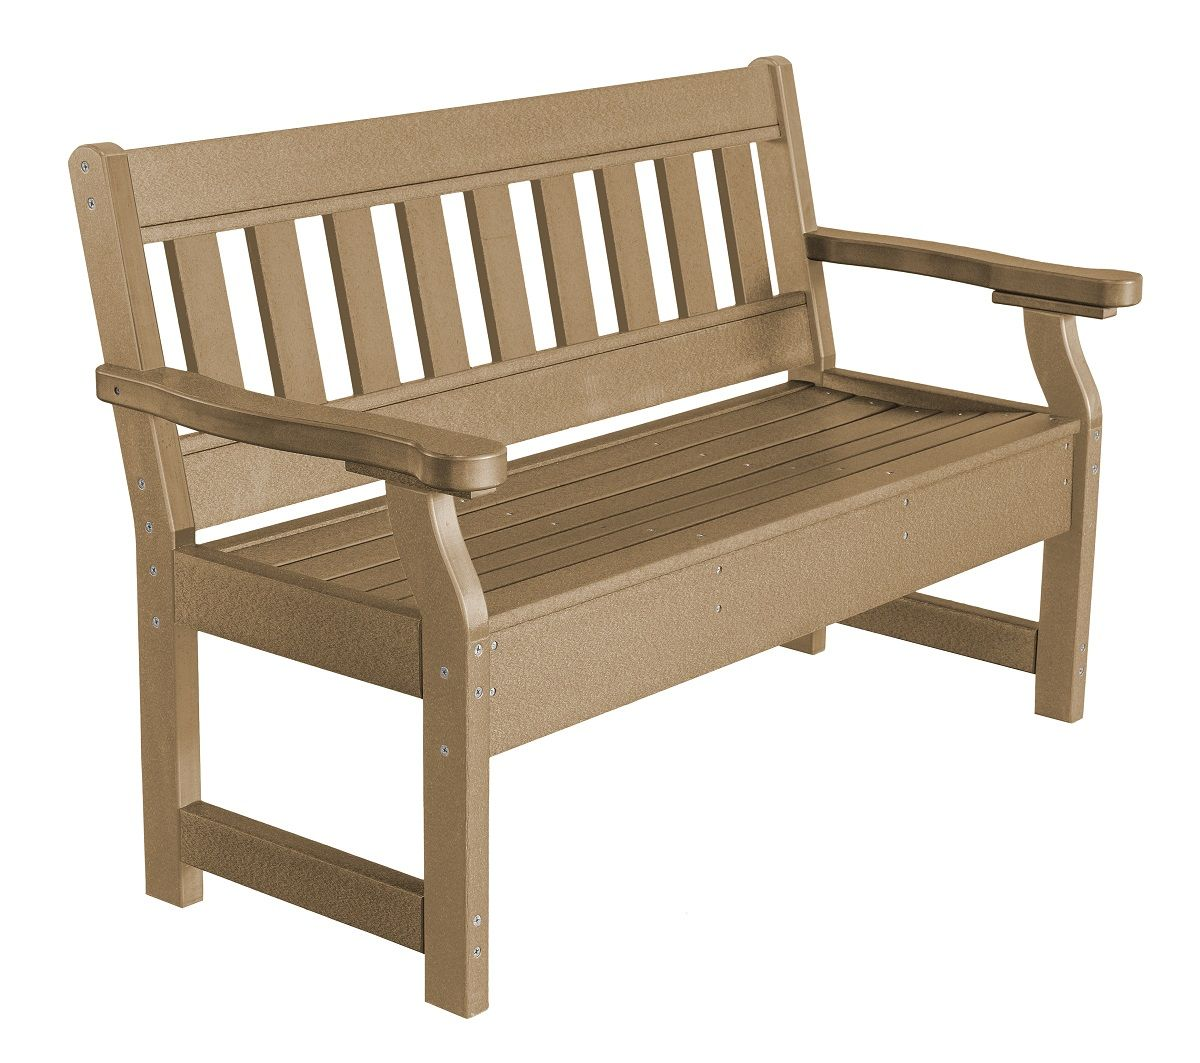 Weathered Wood Aden Garden Bench